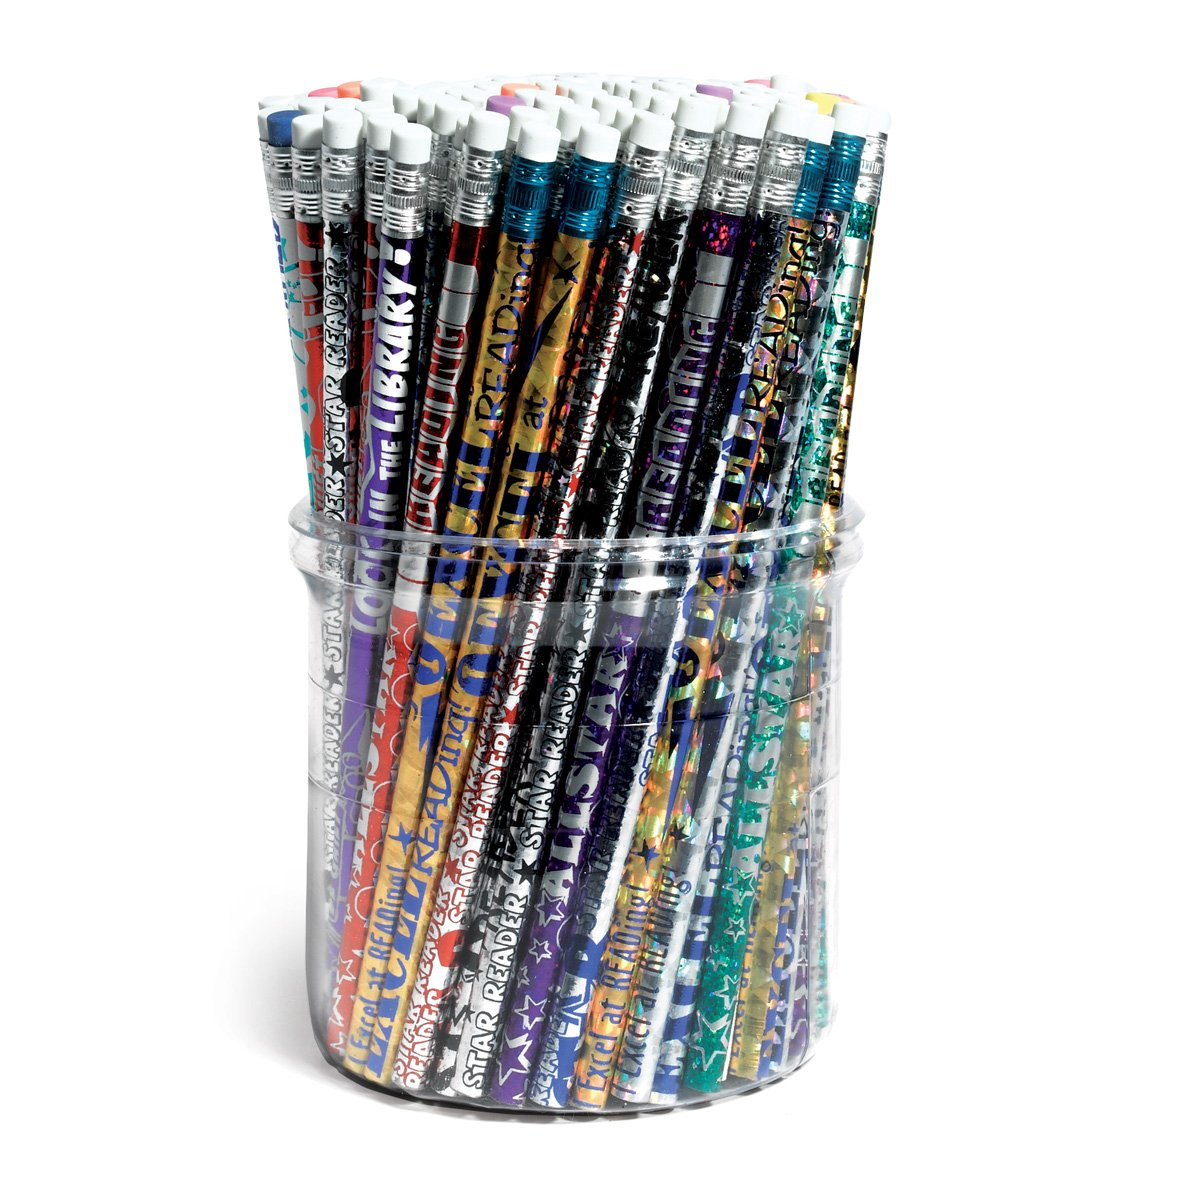 Reading Pencil Tub, 144-Piece #2 Pencils, Assorted Designs and Colors by TCDesignerProducts (Image #1)